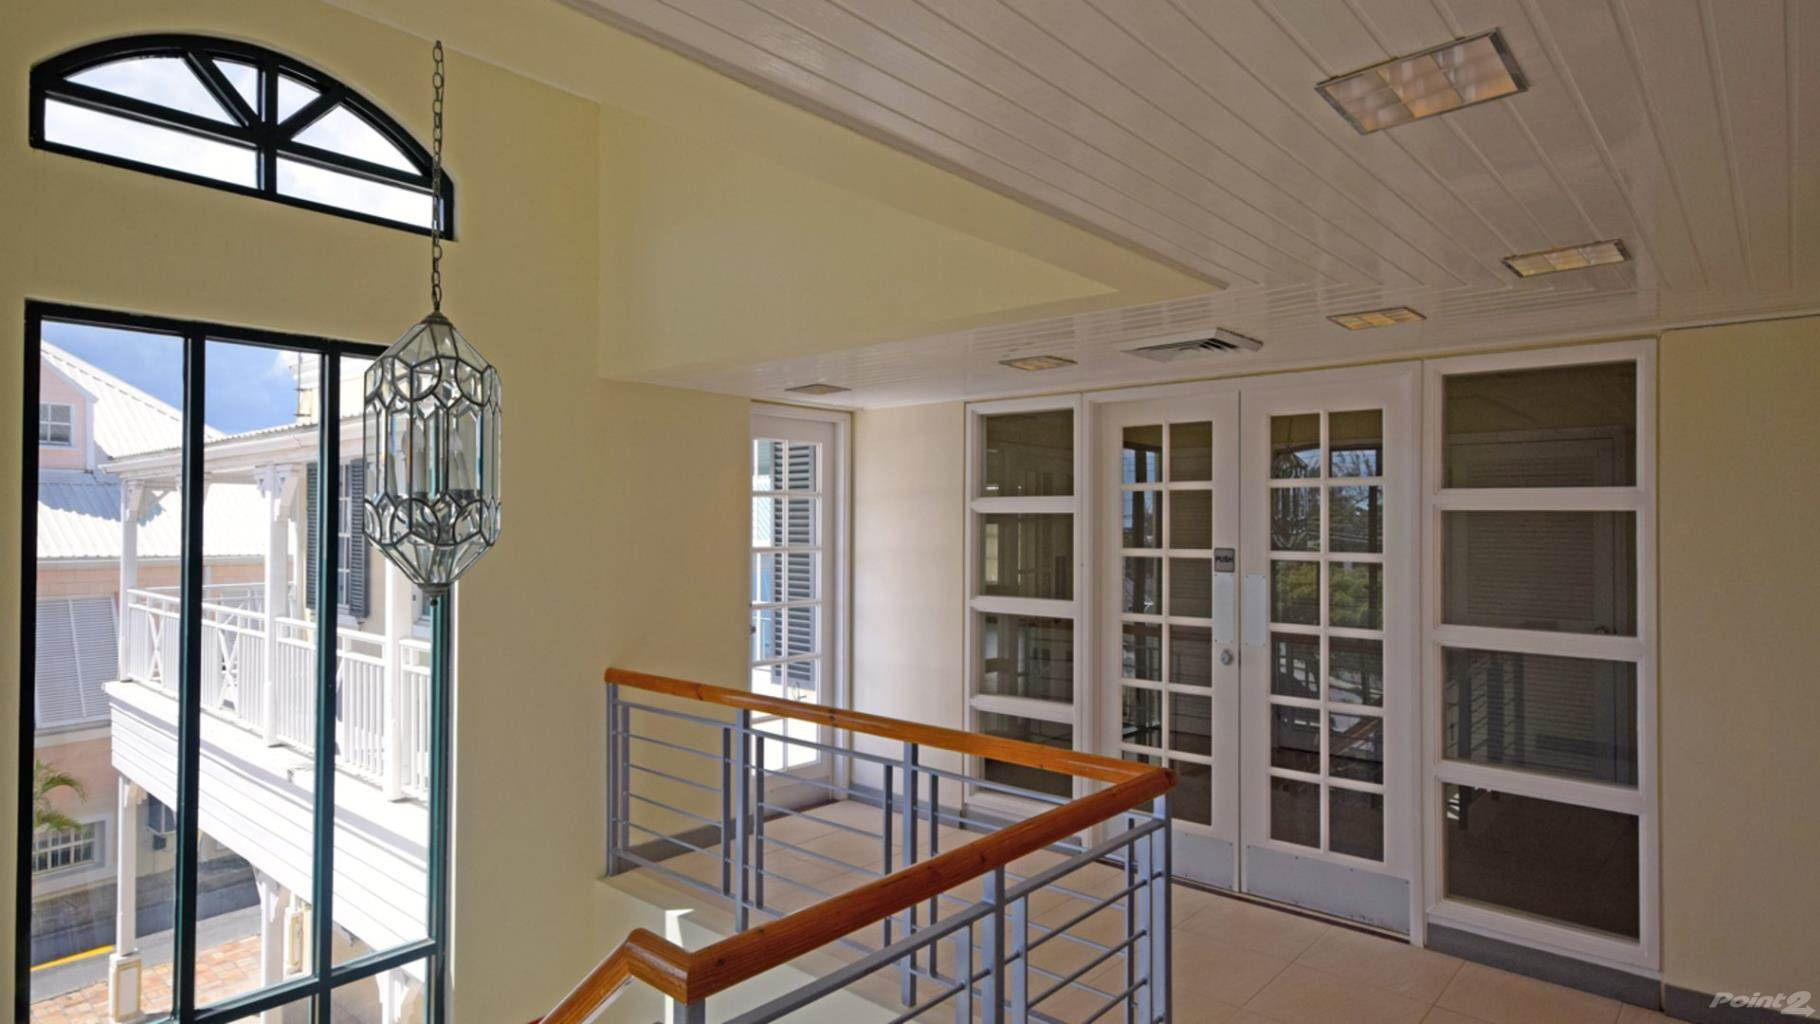 Comercial para alugar em Office space in Courtyard in Hasting, Hastings, Christ Church ,BB15155  , Barbados